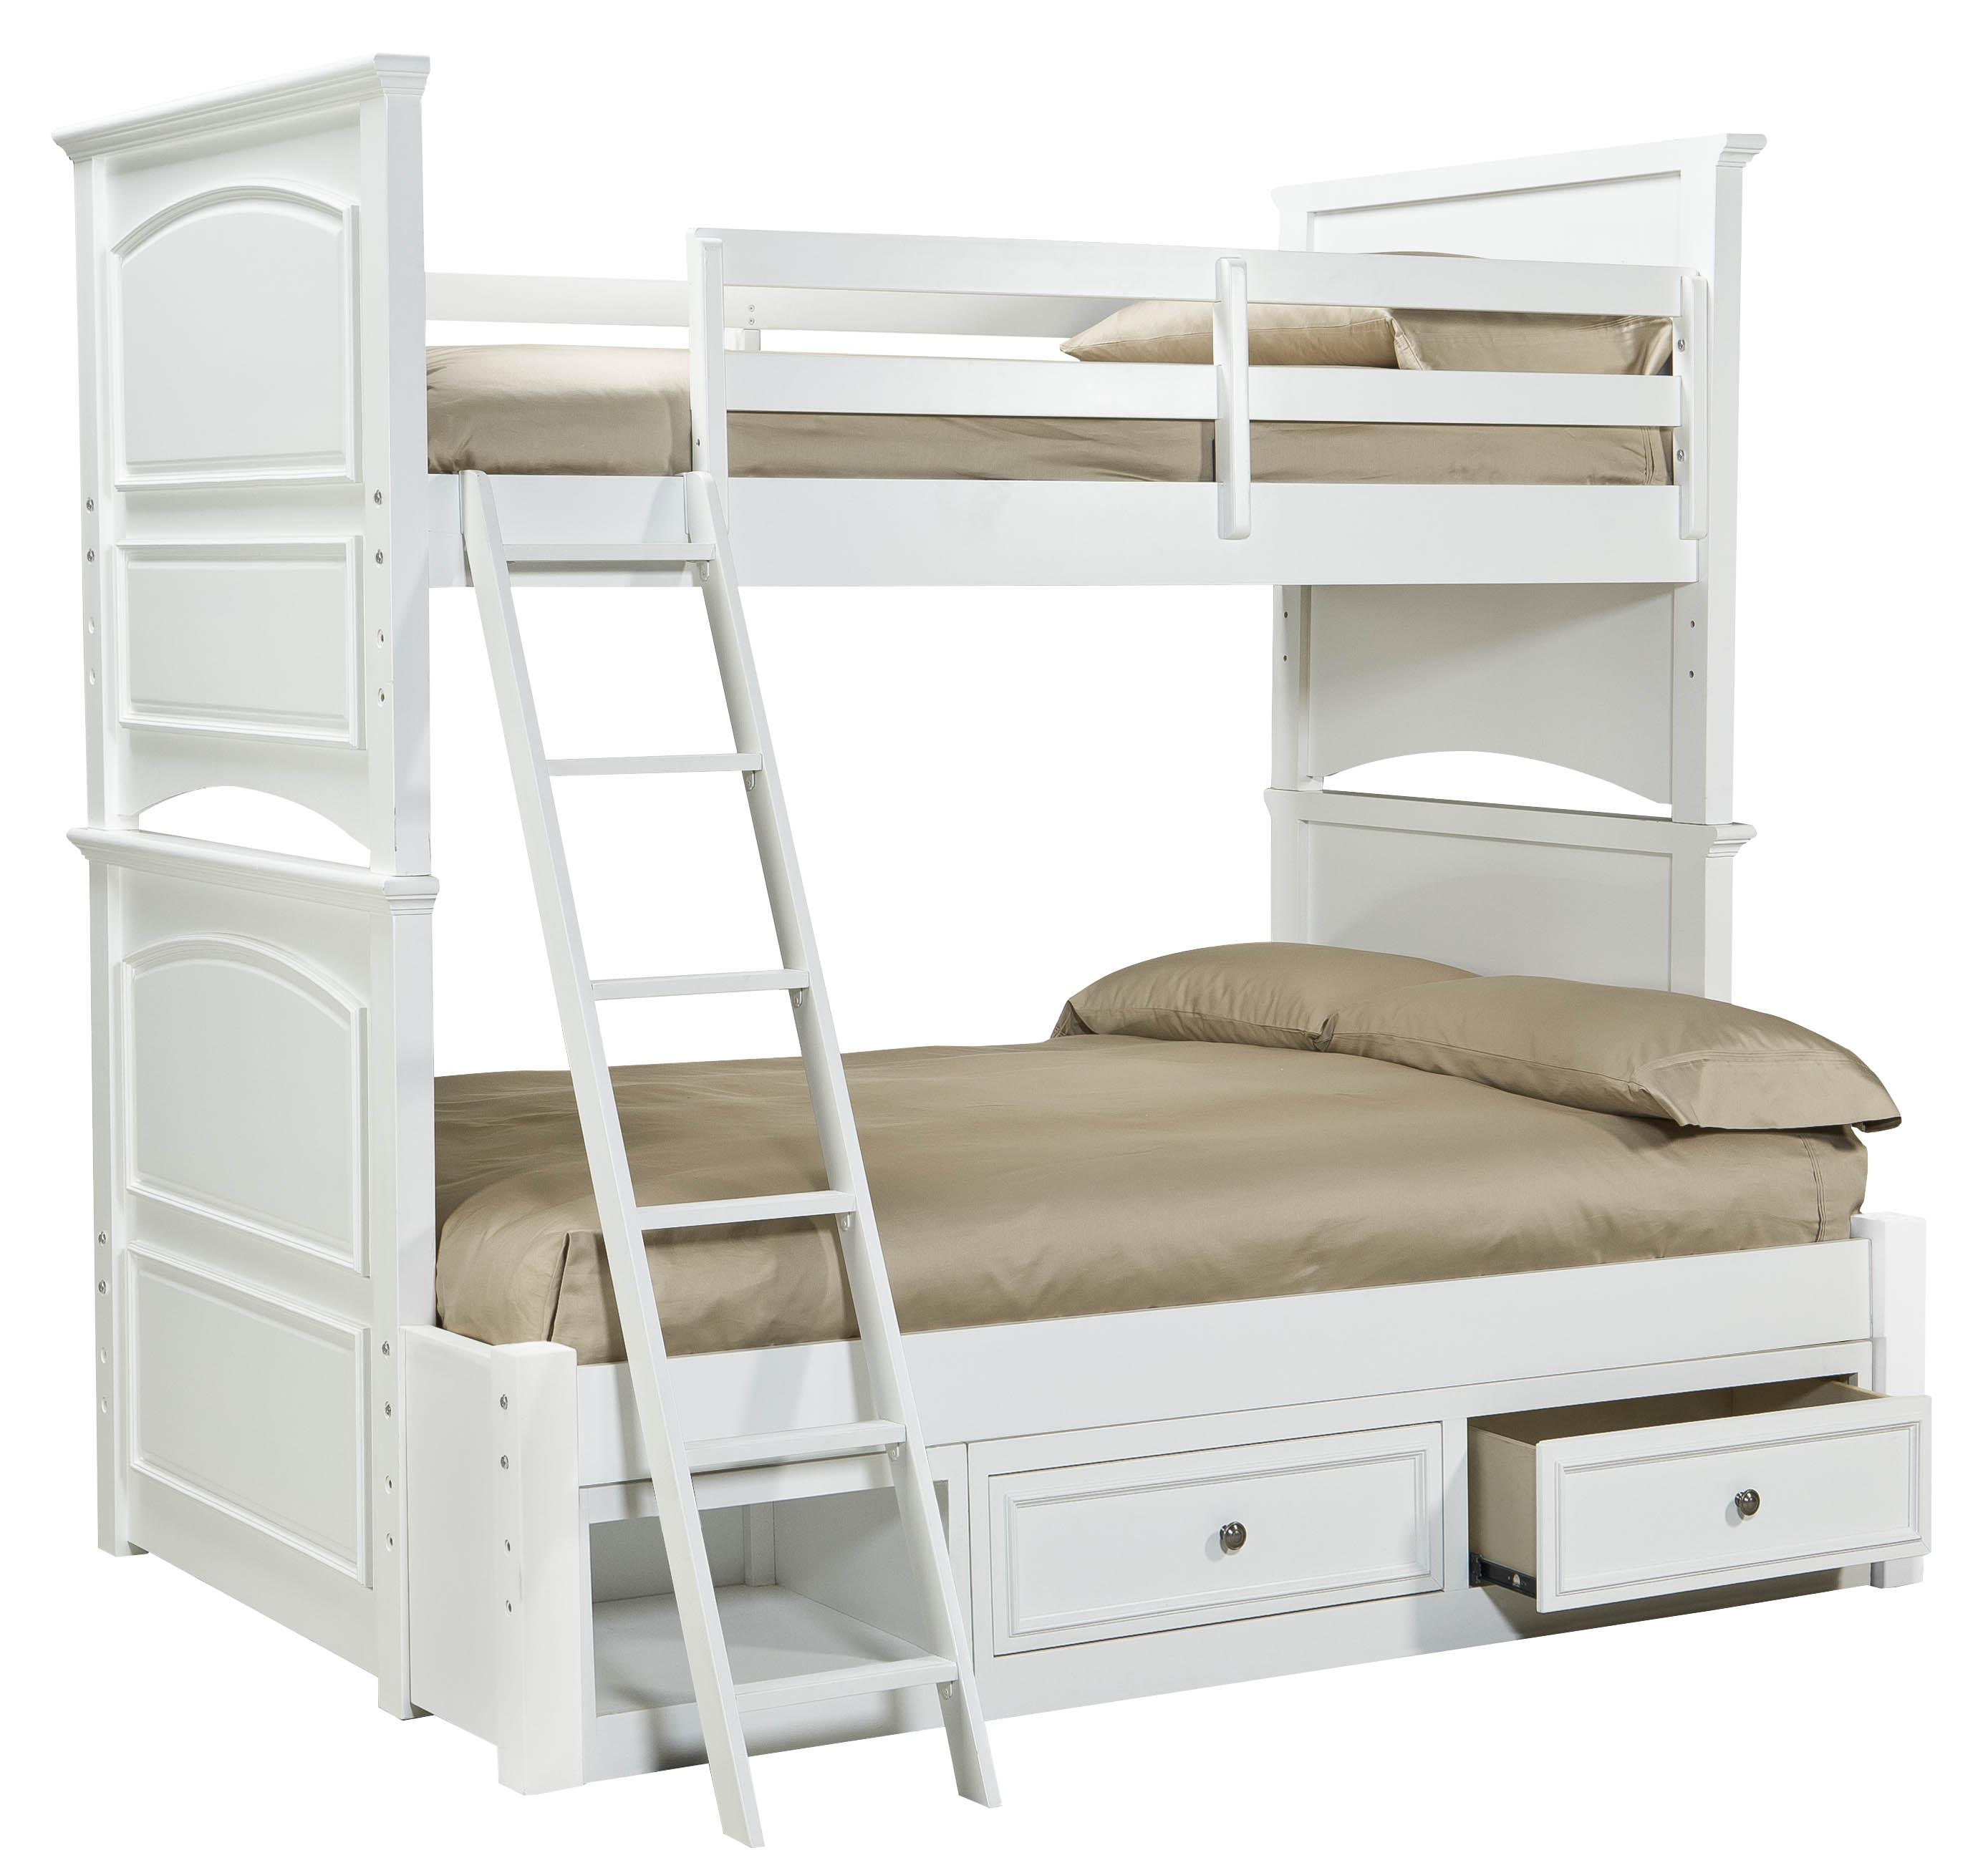 Madison Classic Twin-over-Full Size Storage Bunk Bed by Legacy Classic Kids at Suburban Furniture